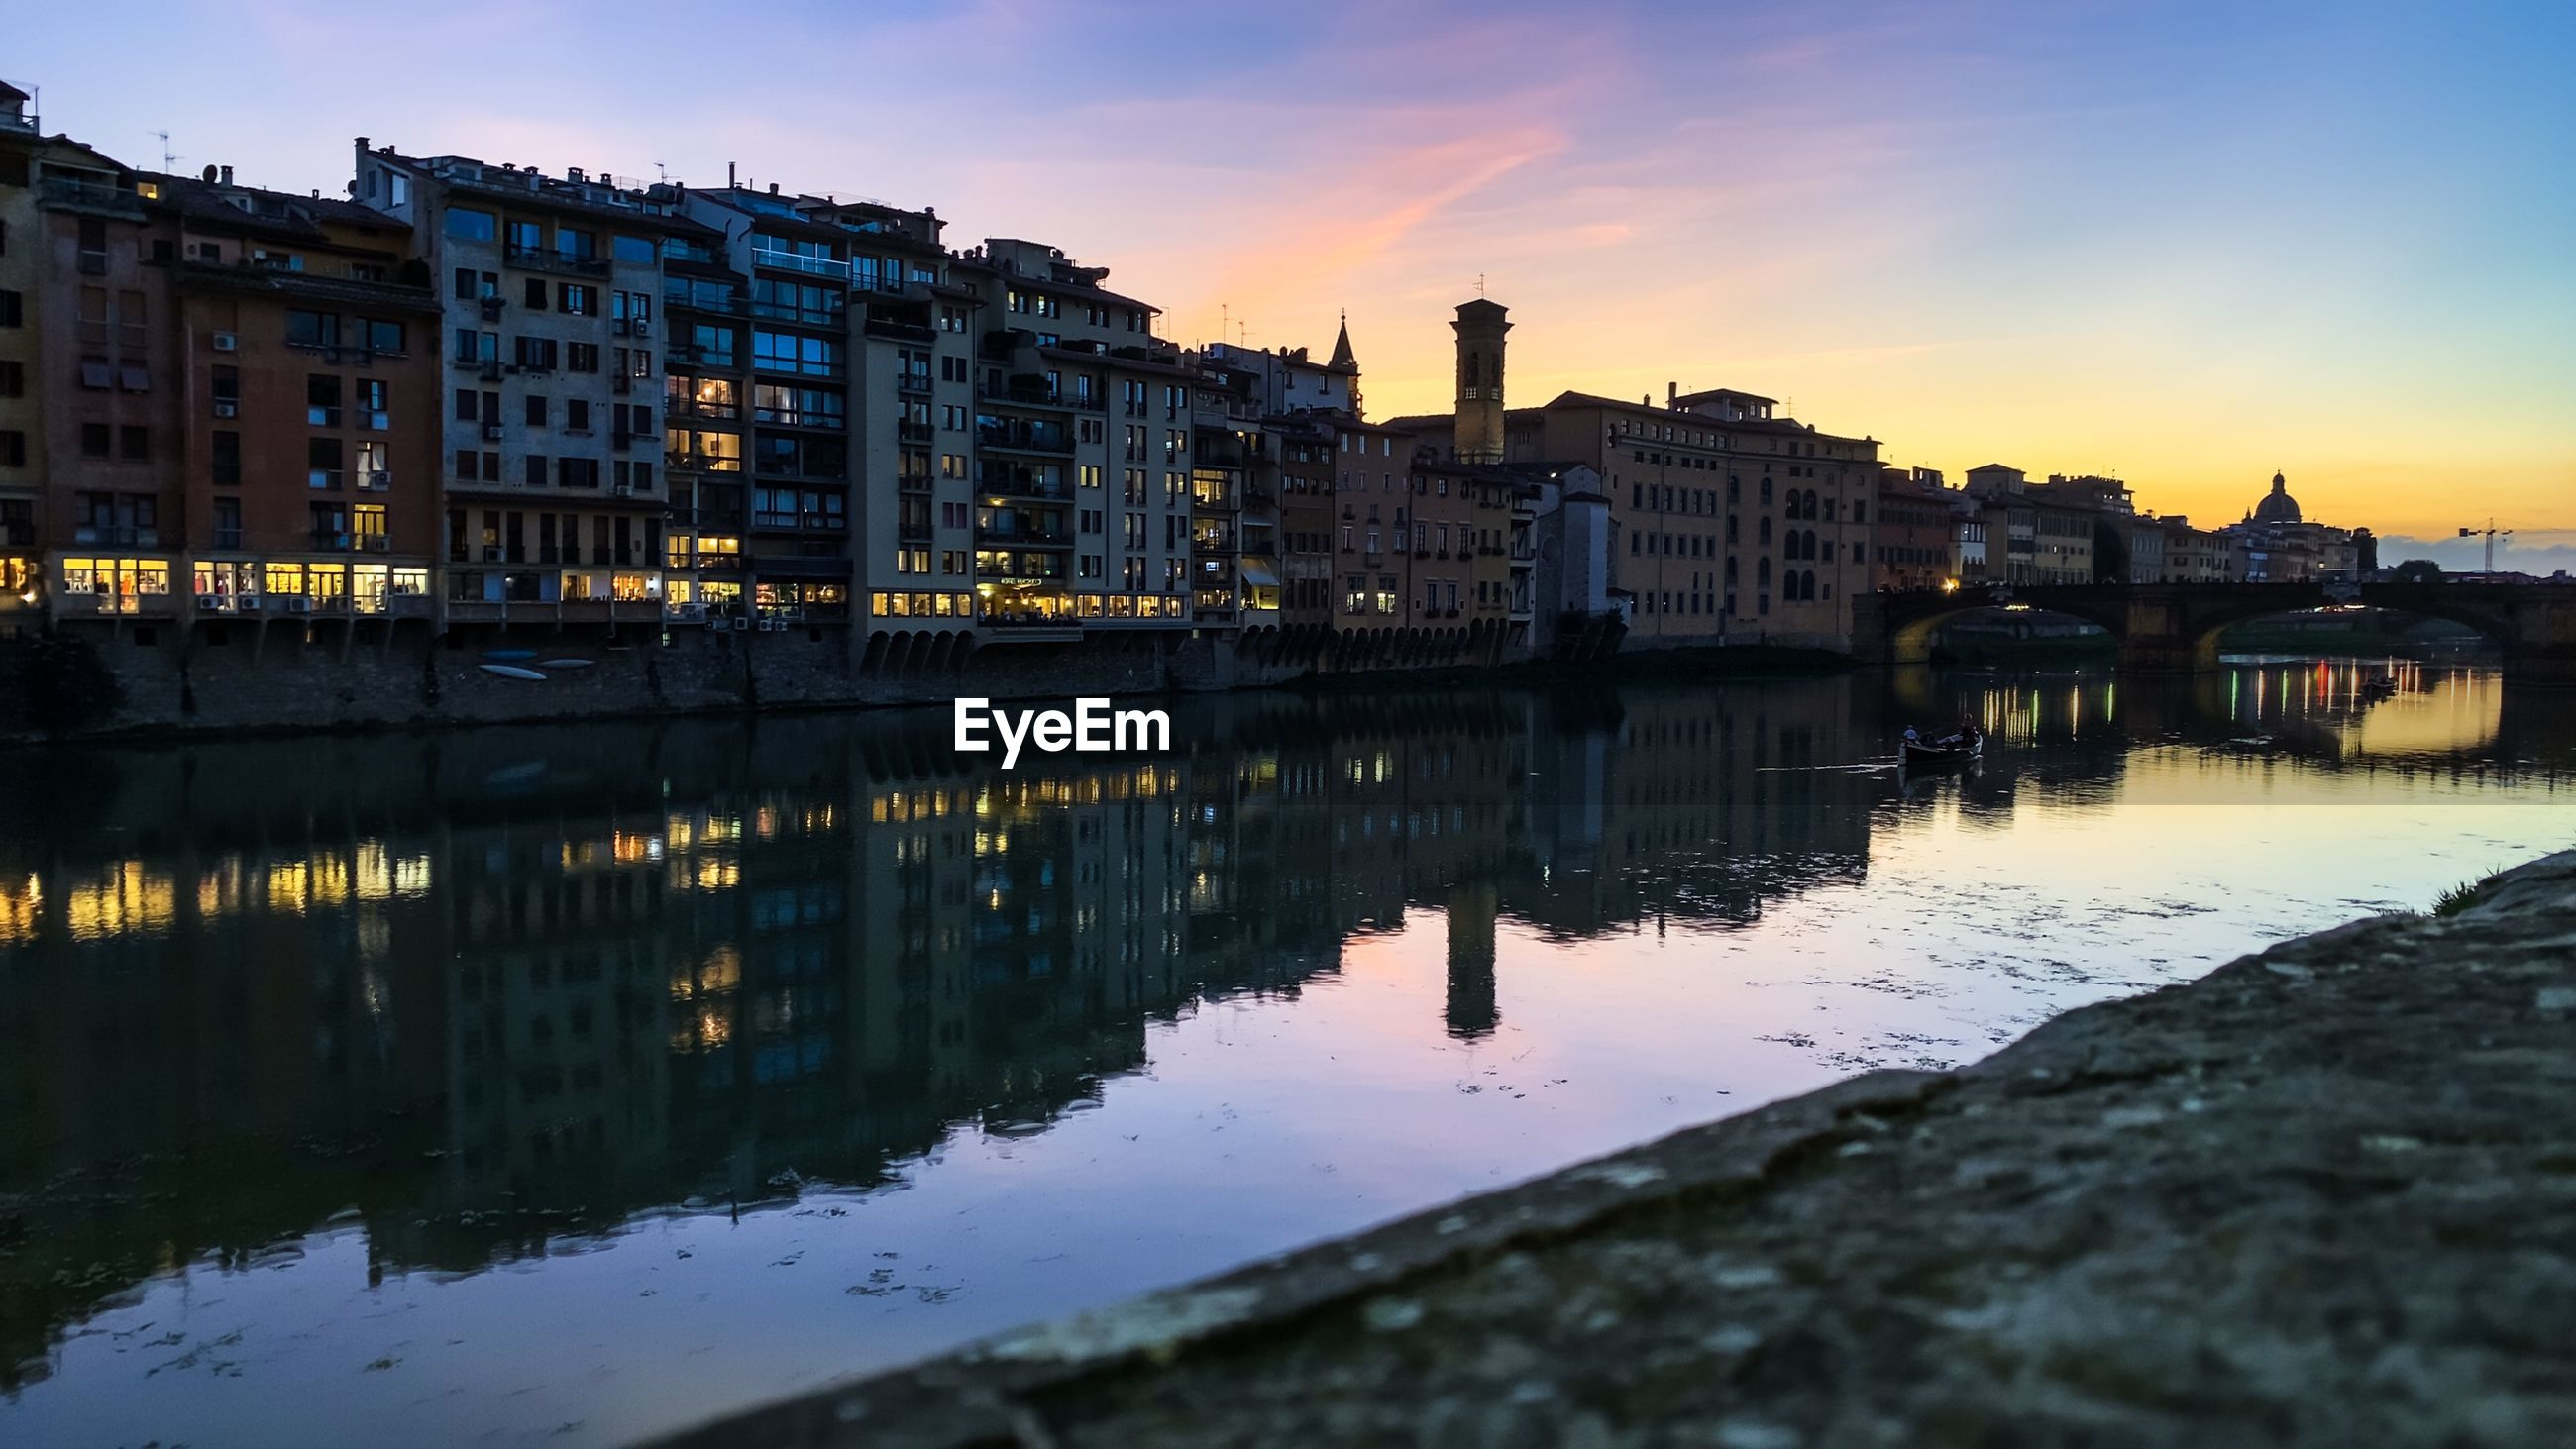 River by illuminated buildings against sky at sunset